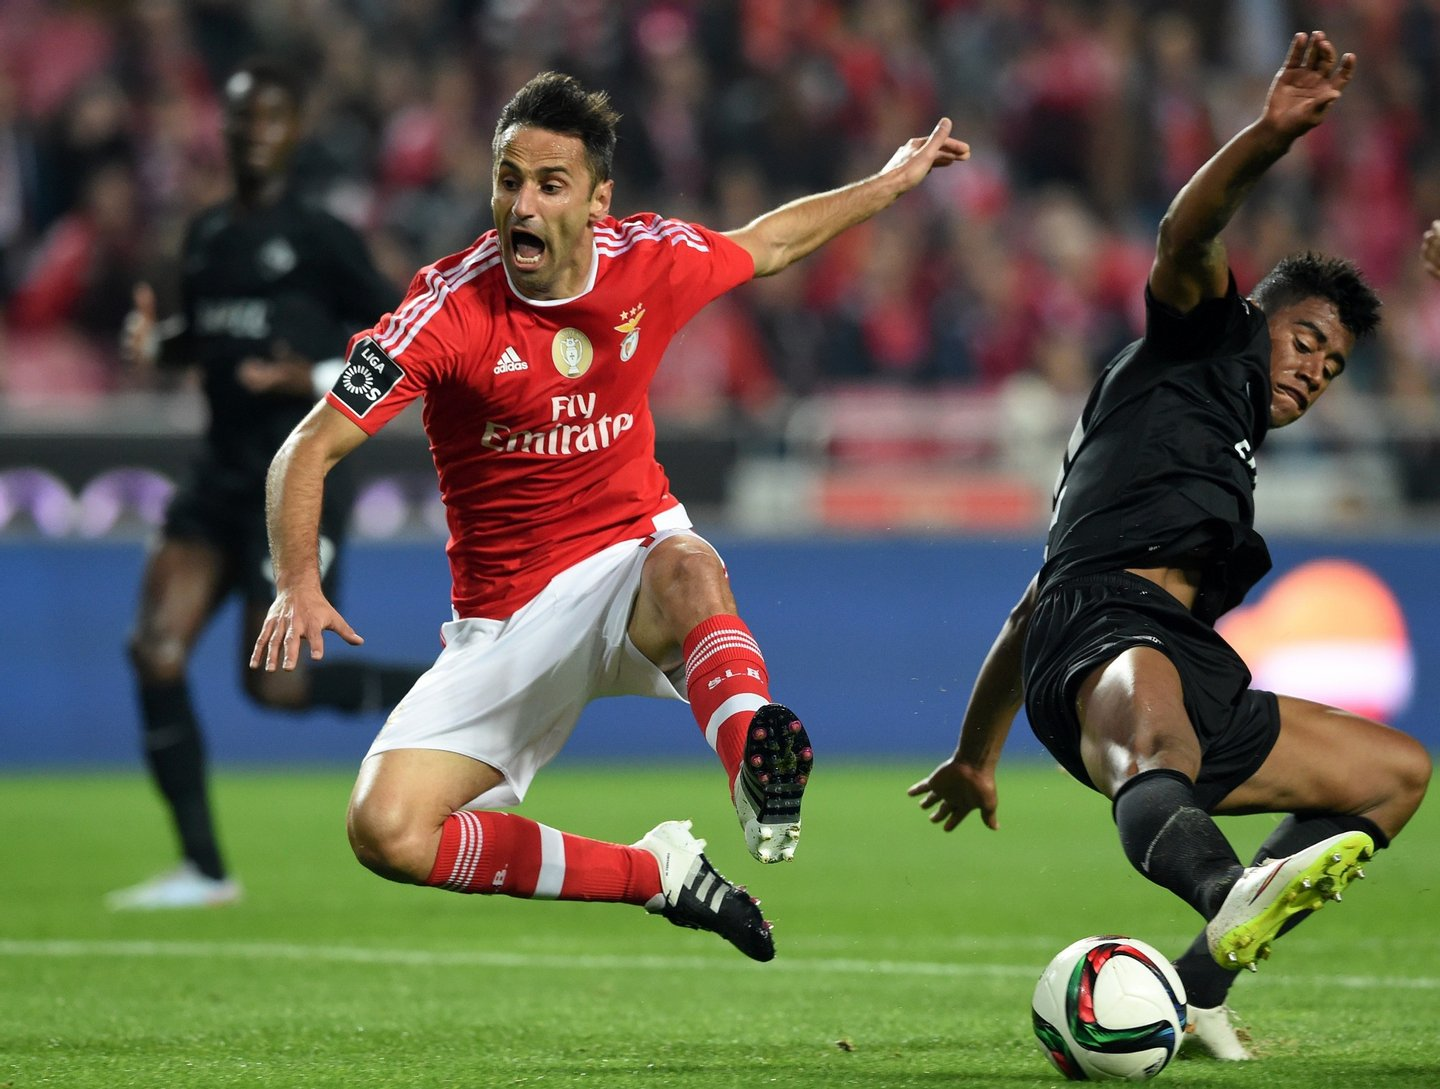 Benfica's Brazilian forward Jonas (L) vies with Academica Coimbra's Brazilian defender Iago Santos during the Portuguese league football match SL Benfica vs Ass Academica de Coimbra at the Luz stadium in Lisbon on December 4, 2015. AFP PHOTO/ FRANCISCO LEONG / AFP / FRANCISCO LEONG (Photo credit should read FRANCISCO LEONG/AFP/Getty Images)